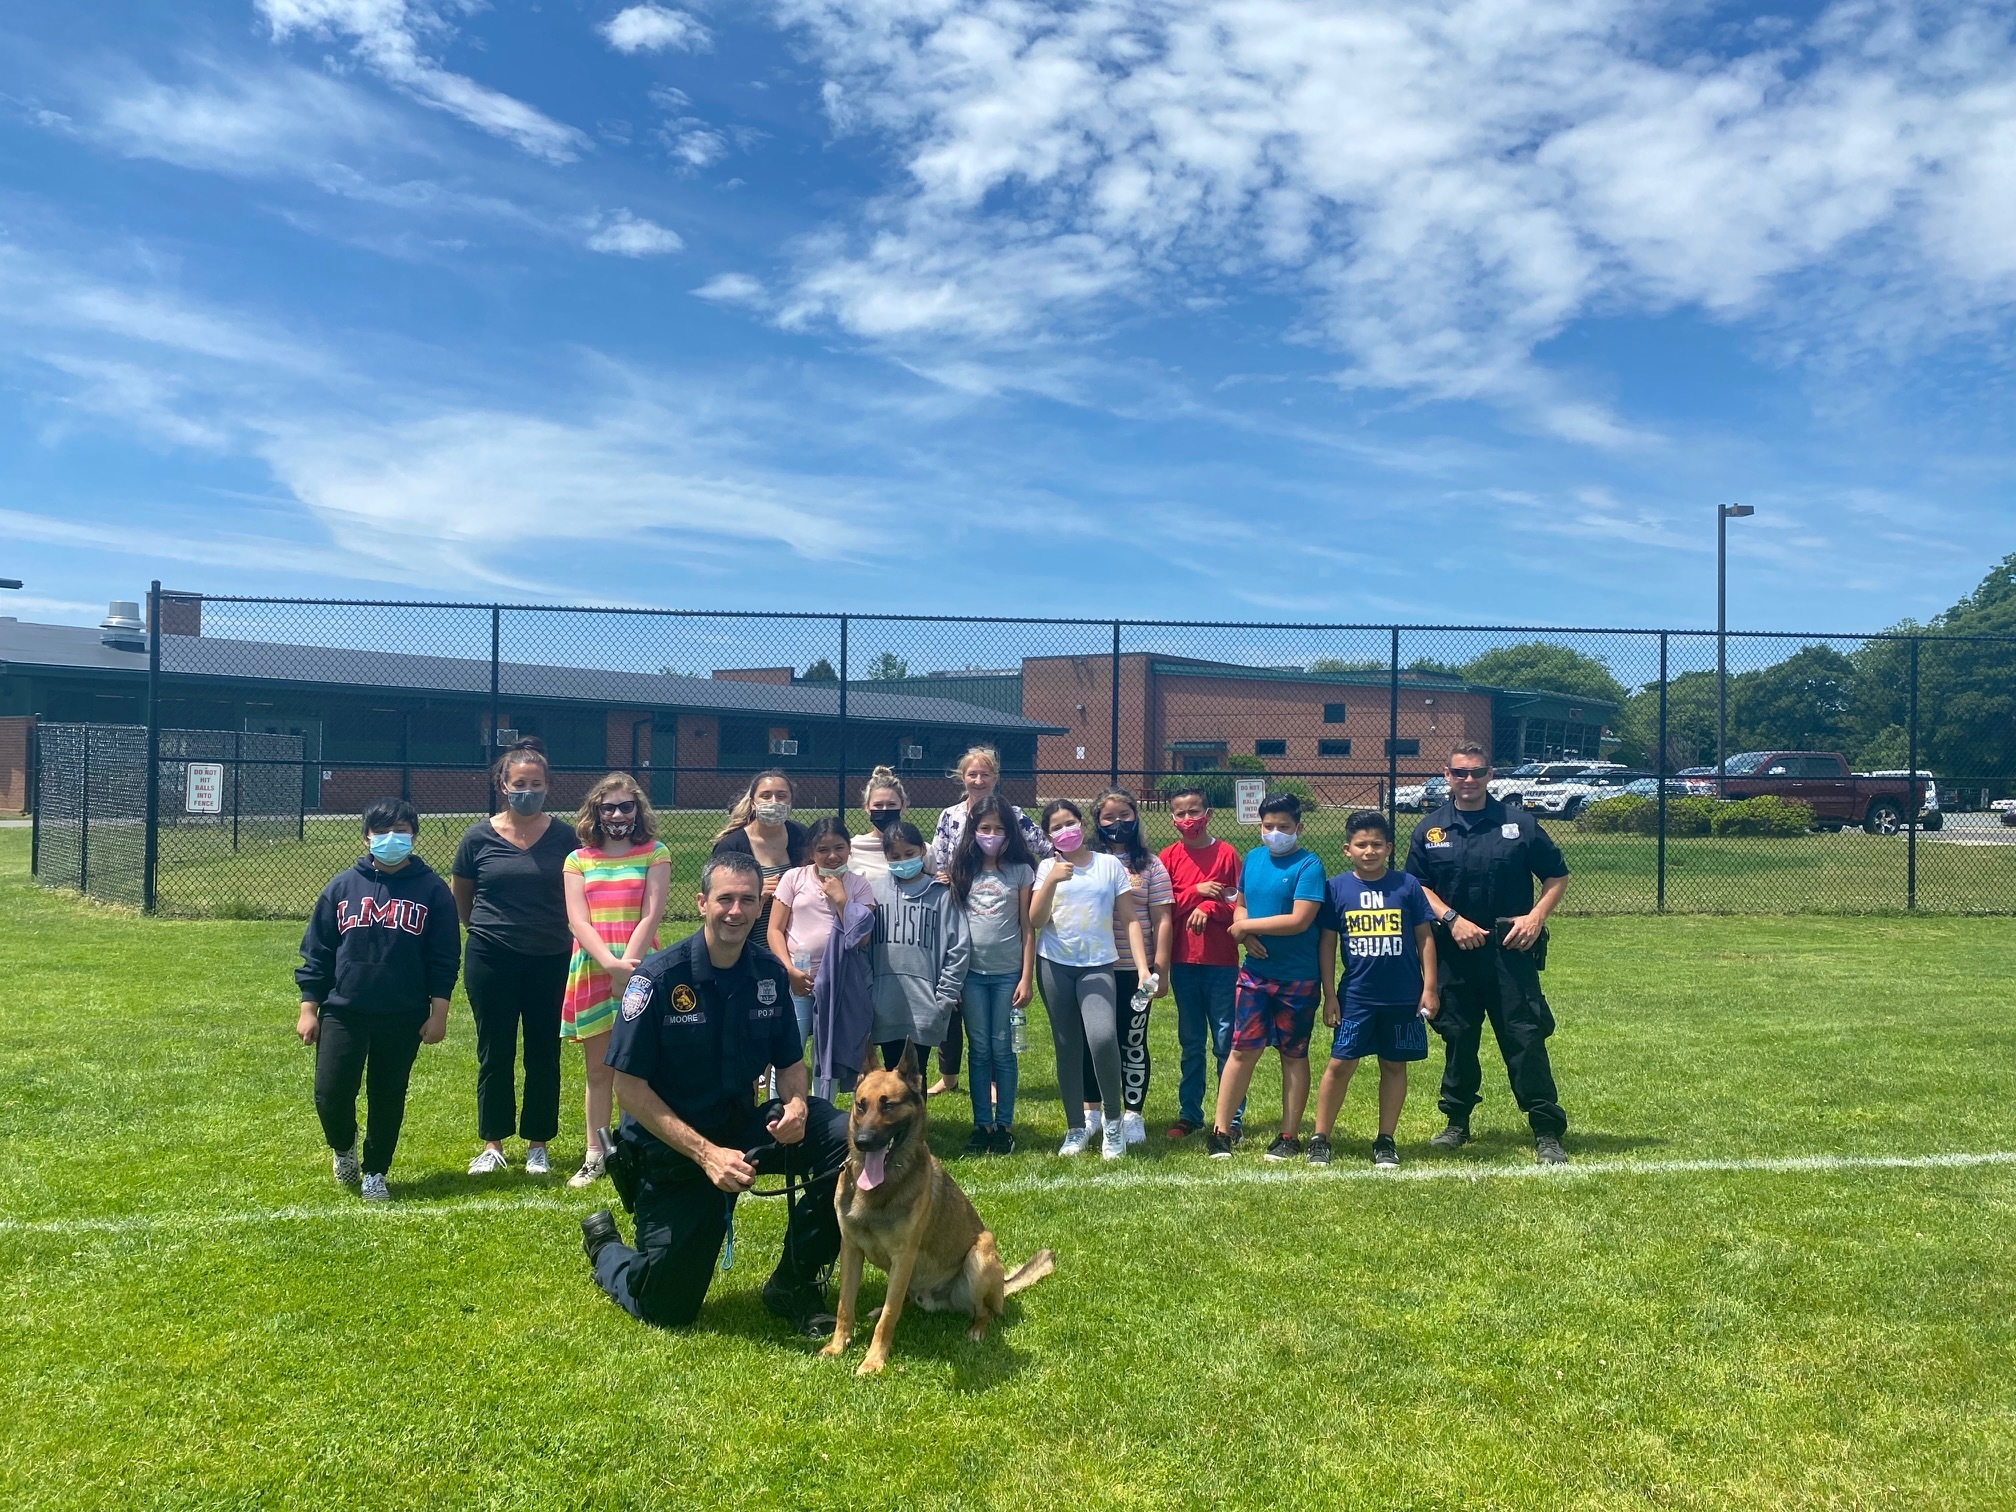 Southampton Intermediate School students learned about K-9s during a recent visit from local police officers.